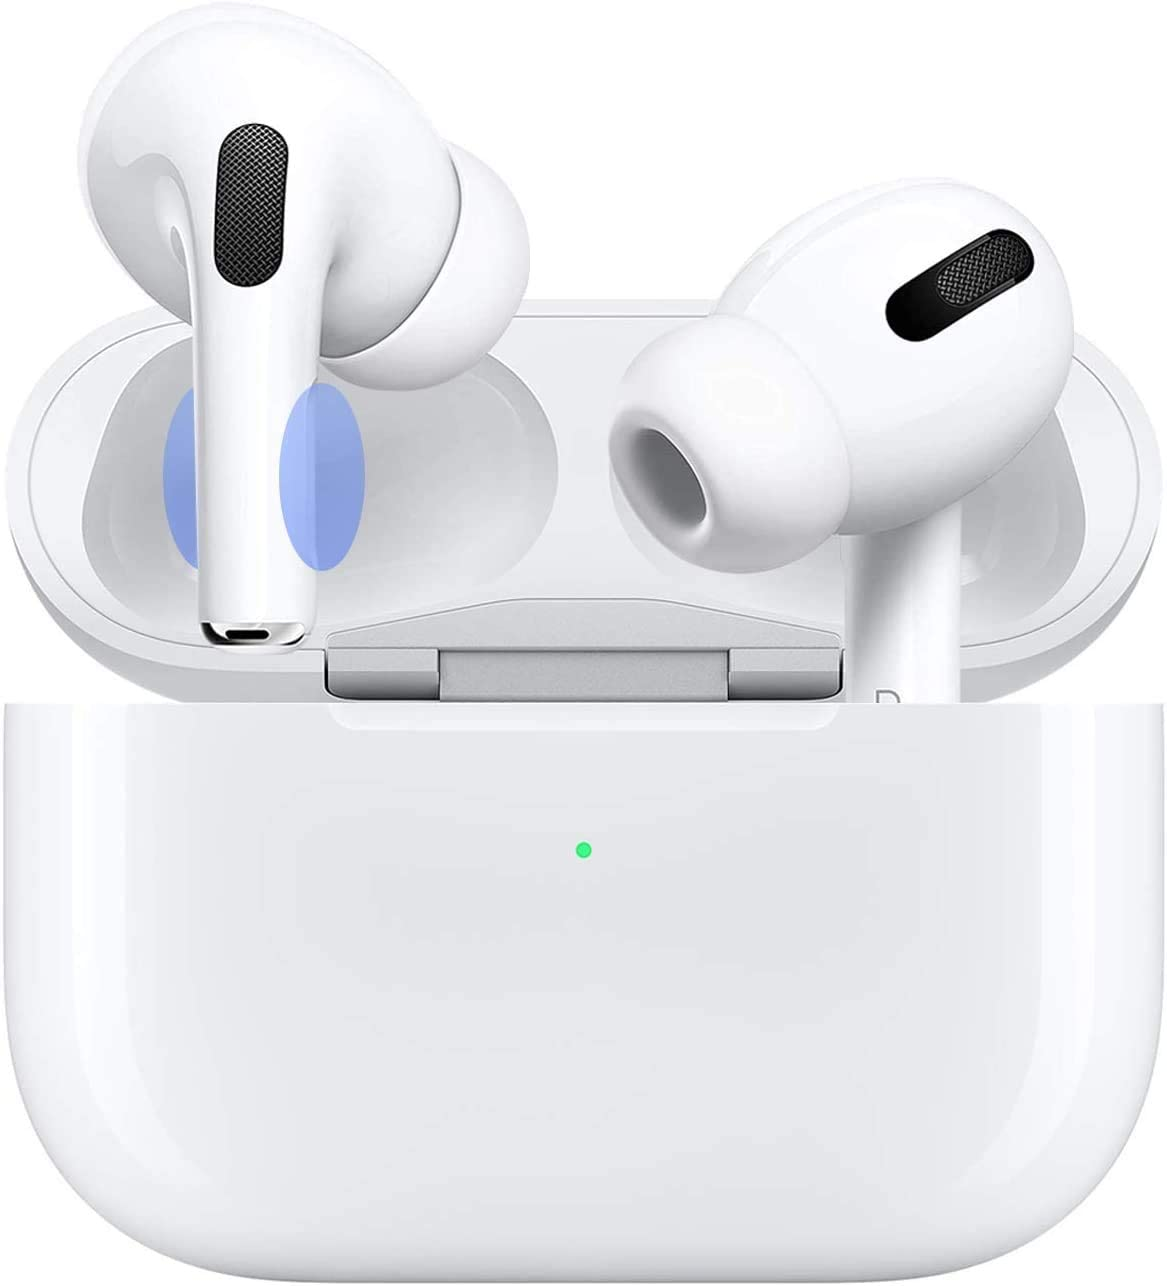 Wireless iPhone Earbuds with ?24Hrs Charging Case? Noise Cancelling Headphones IPX5 Waterproof 3D Stereo Pop-ups Auto Pairing Fast Charging Premium Sound with Deep Bass for iPhone/Android/Airpods